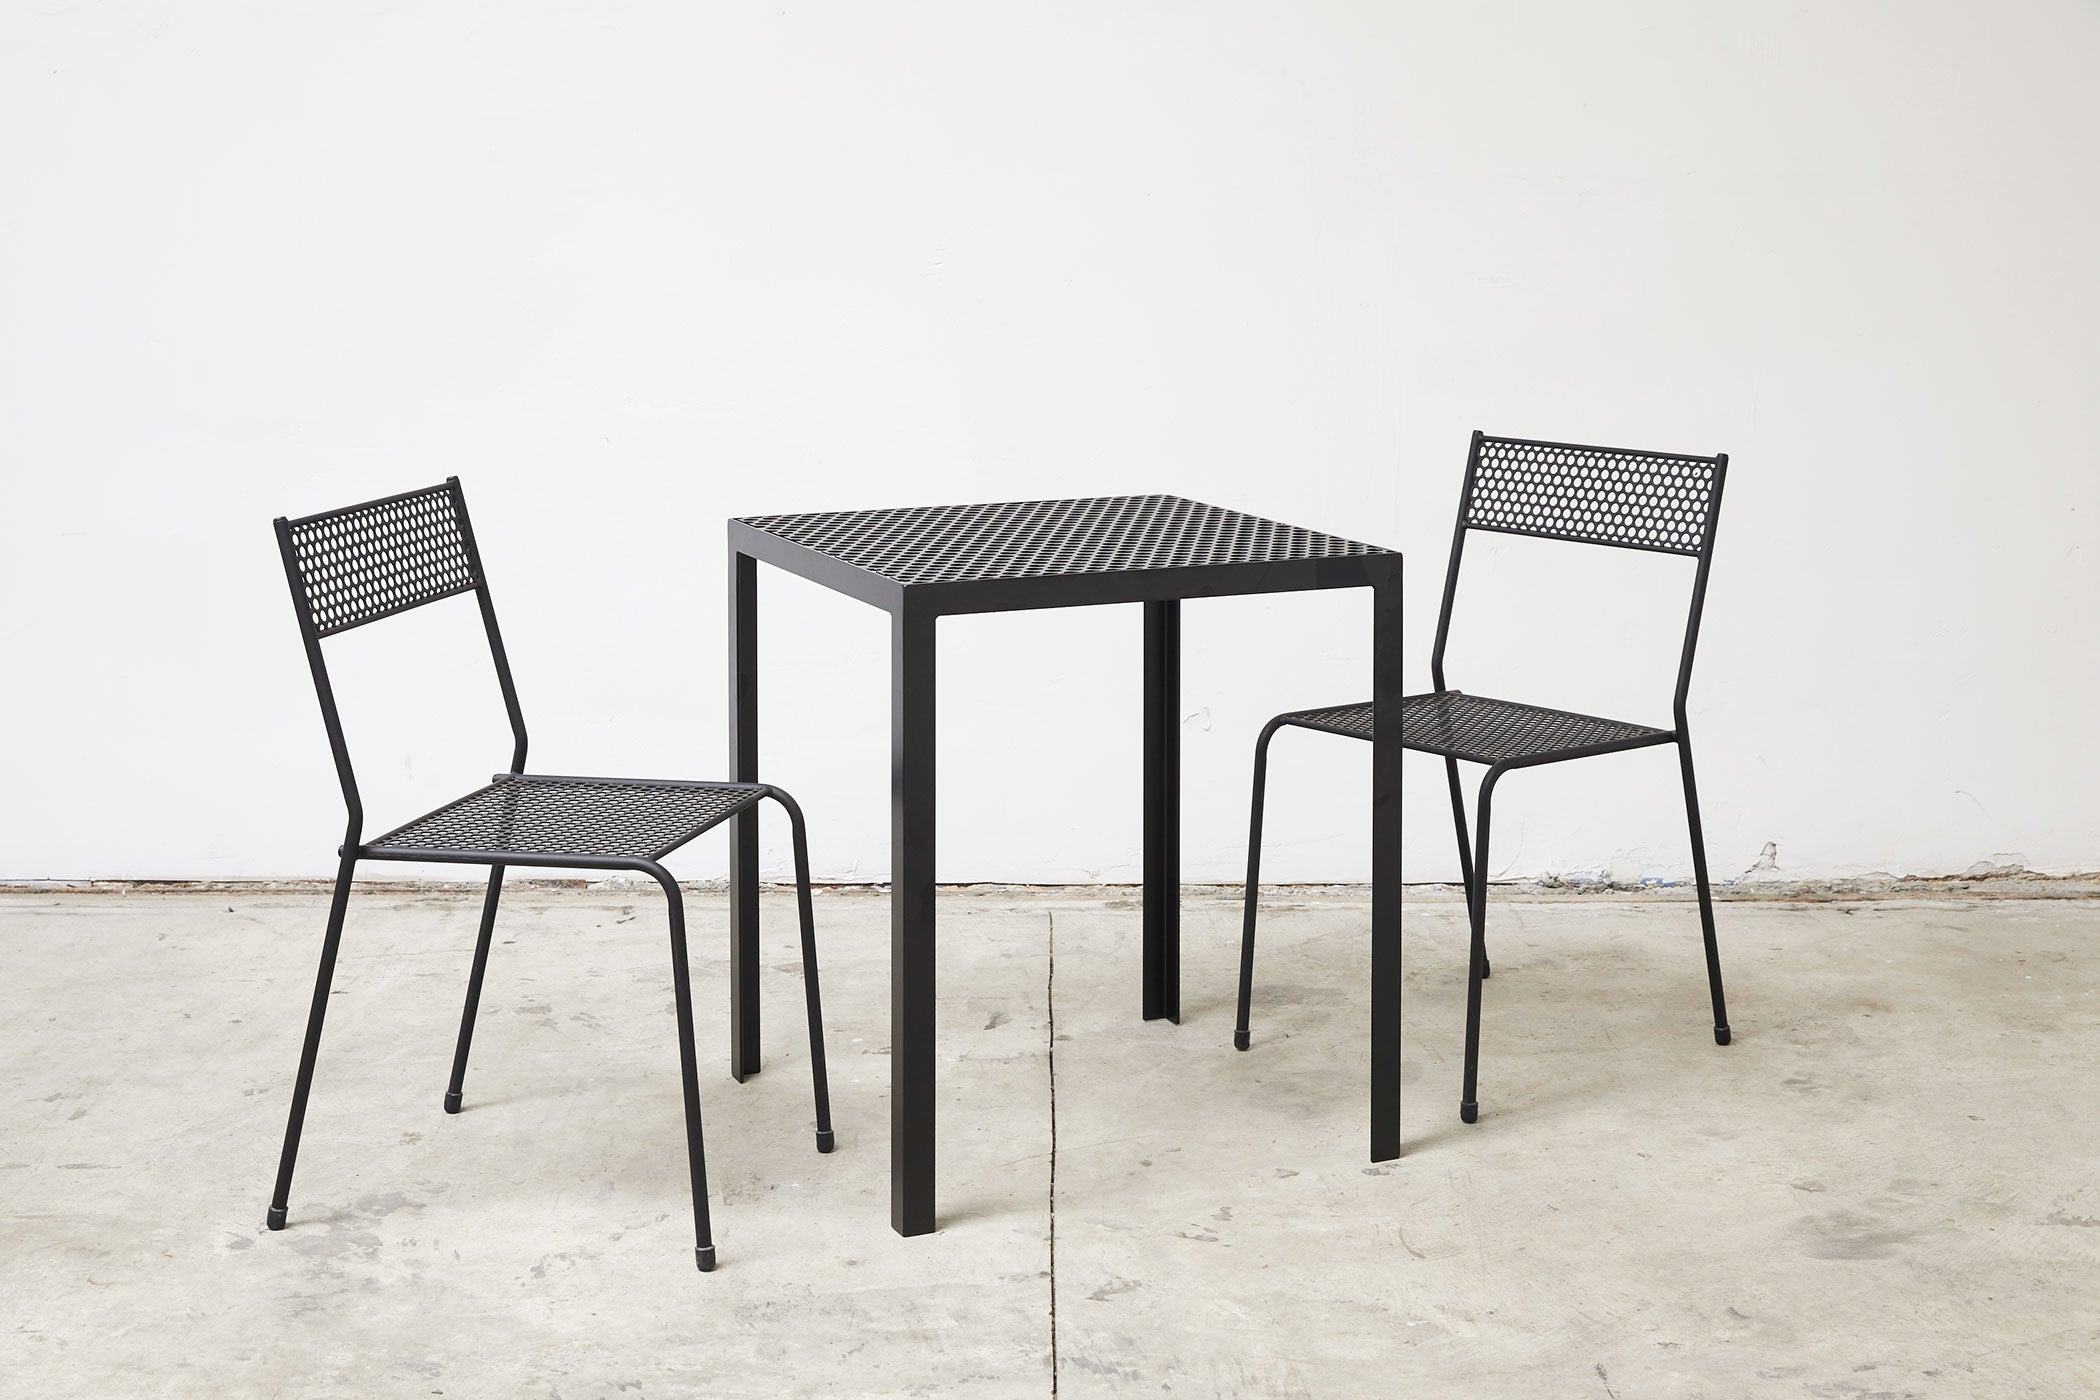 RAD Furniture's Perforated Cafe Table and Perforated Cafe Chairs